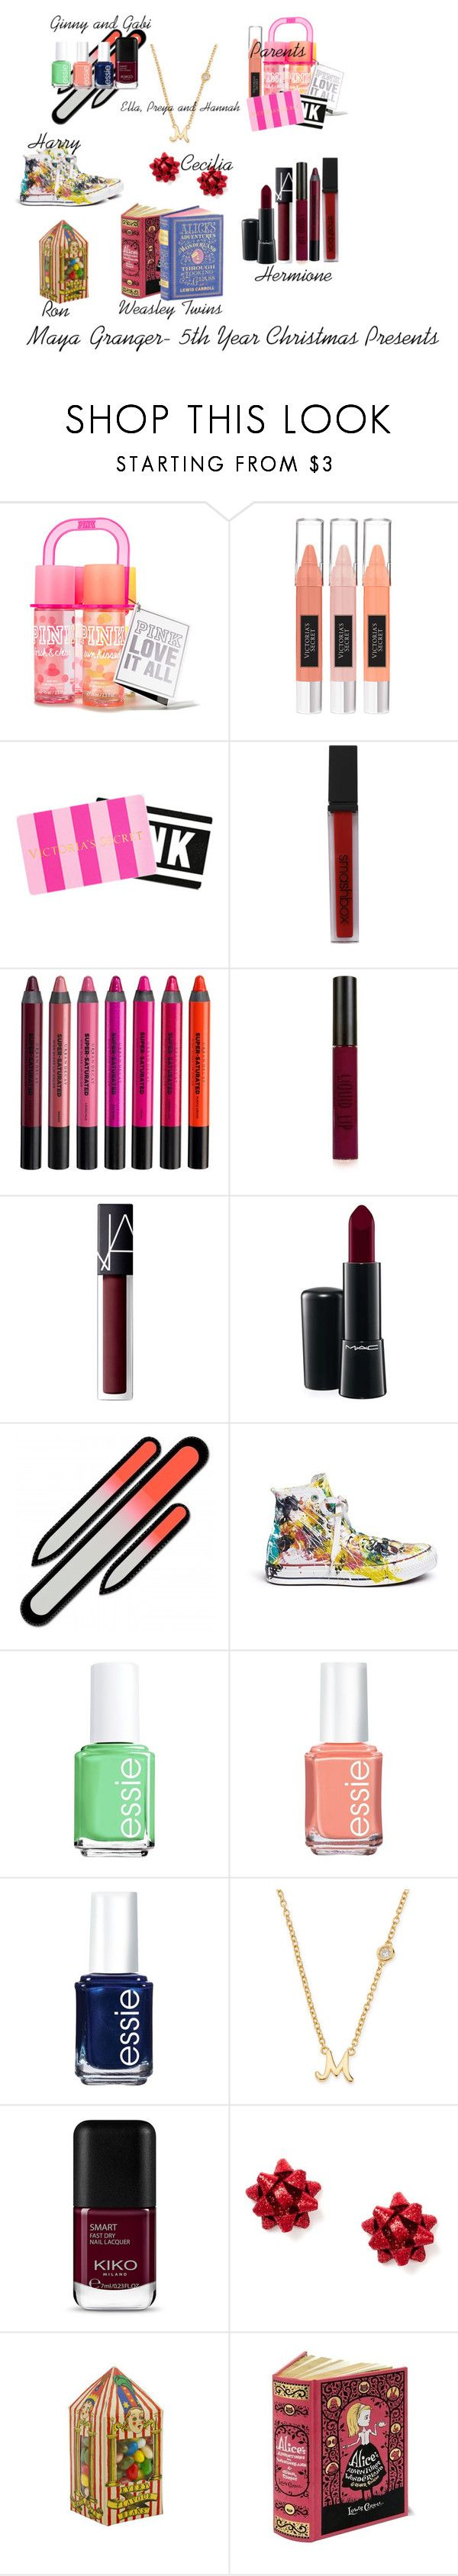 """""""Maya Granger- 5th Year Christmas Presents"""" by the-fault-in-our-paper-towns ❤ liked on Polyvore featuring Victoria's Secret, Smashbox, Urban Decay, Topshop, NARS Cosmetics, MAC Cosmetics, Rialto Jean Project, Essie, Sydney Evan and Bertie"""